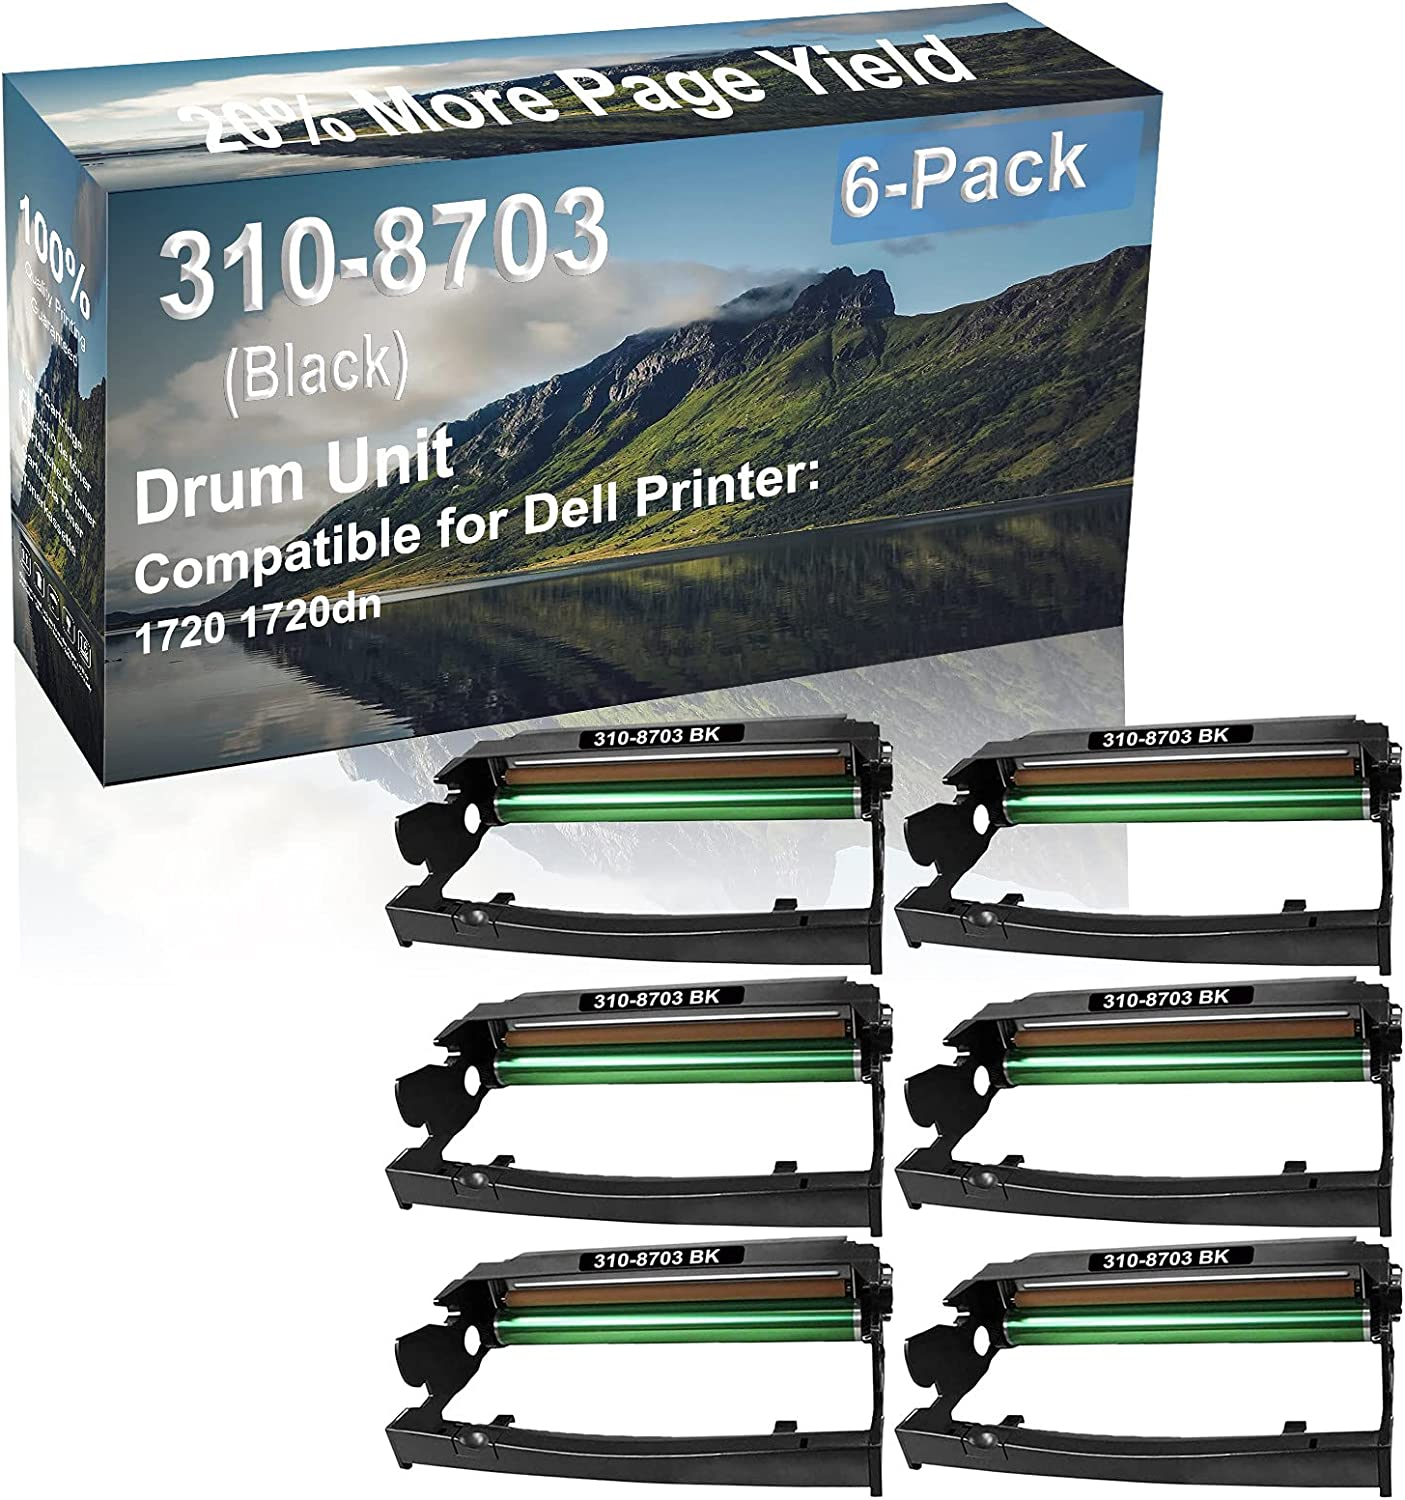 6-Pack Compatible 310-8703 Drum Kit use for Dell 1720 1720dn Printer (Black)